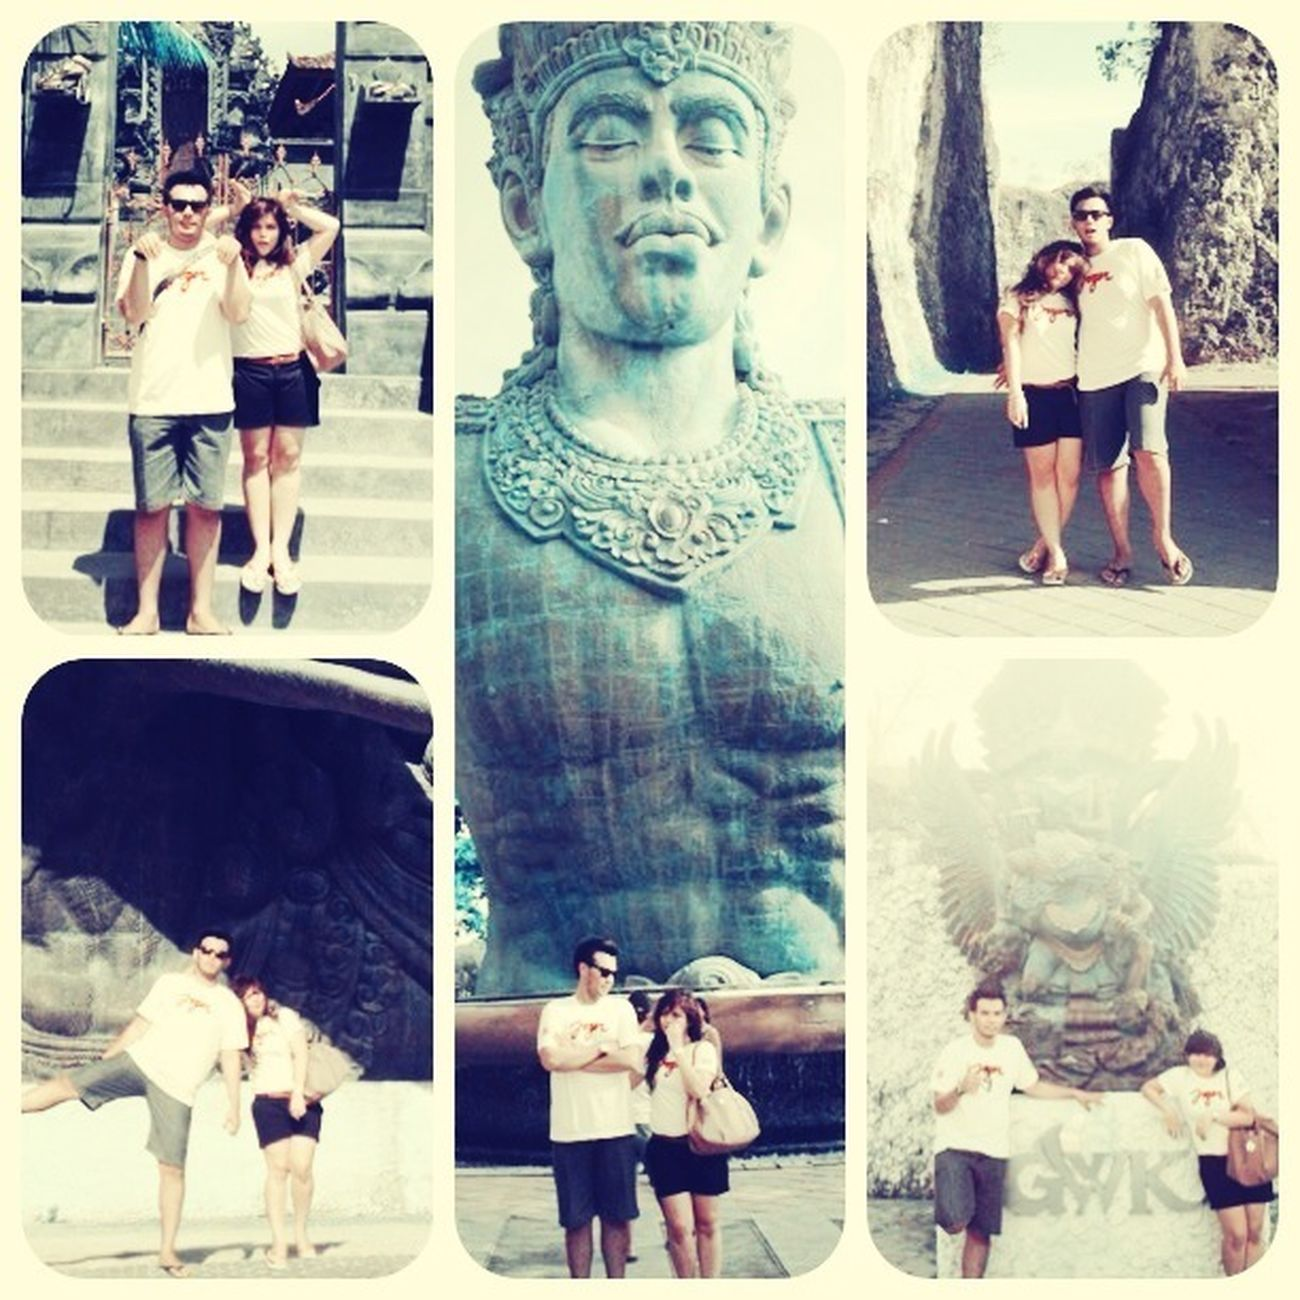 Bali, August 2012. love you.